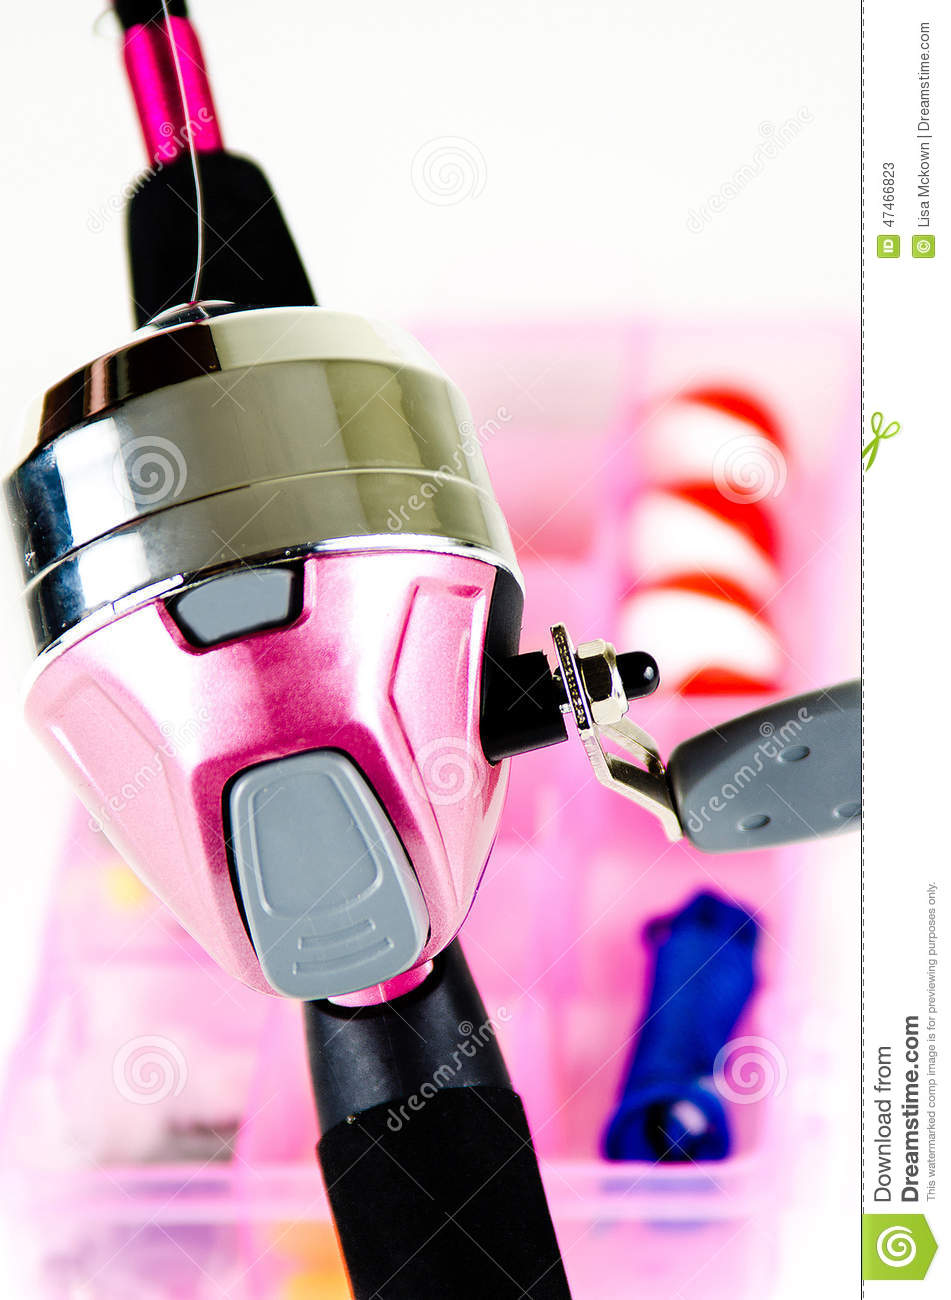 Fishing pole and tackle in pink stock photo image 47466823 for Pink fishing gear